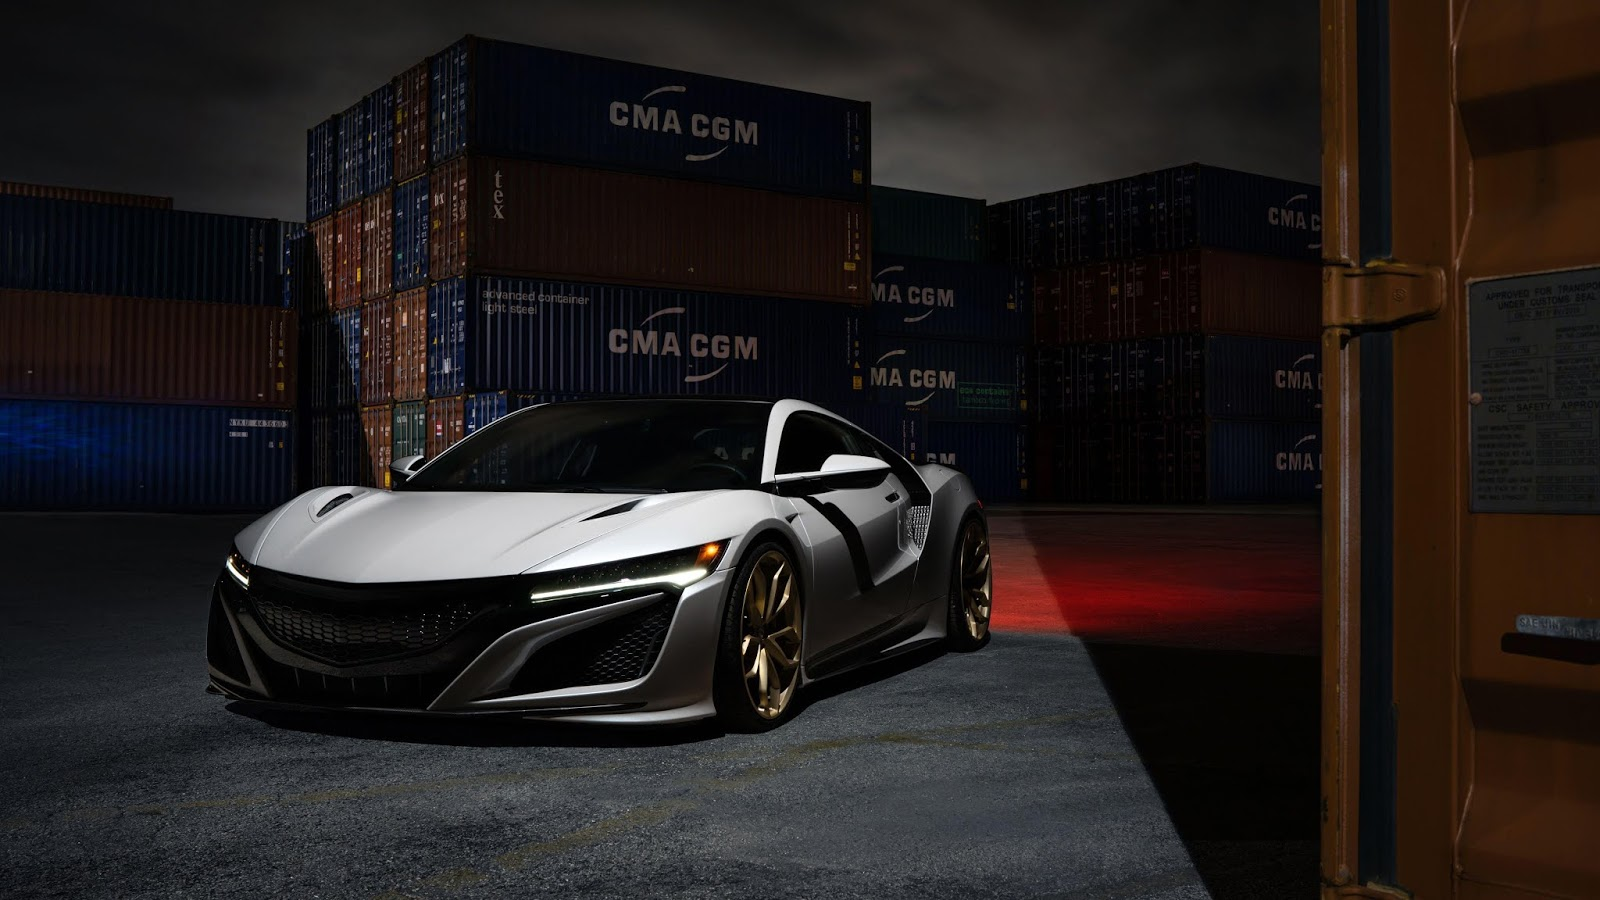 2017 Acura NSX HRE Wheels 5K Wallpapers car wallpapers hd